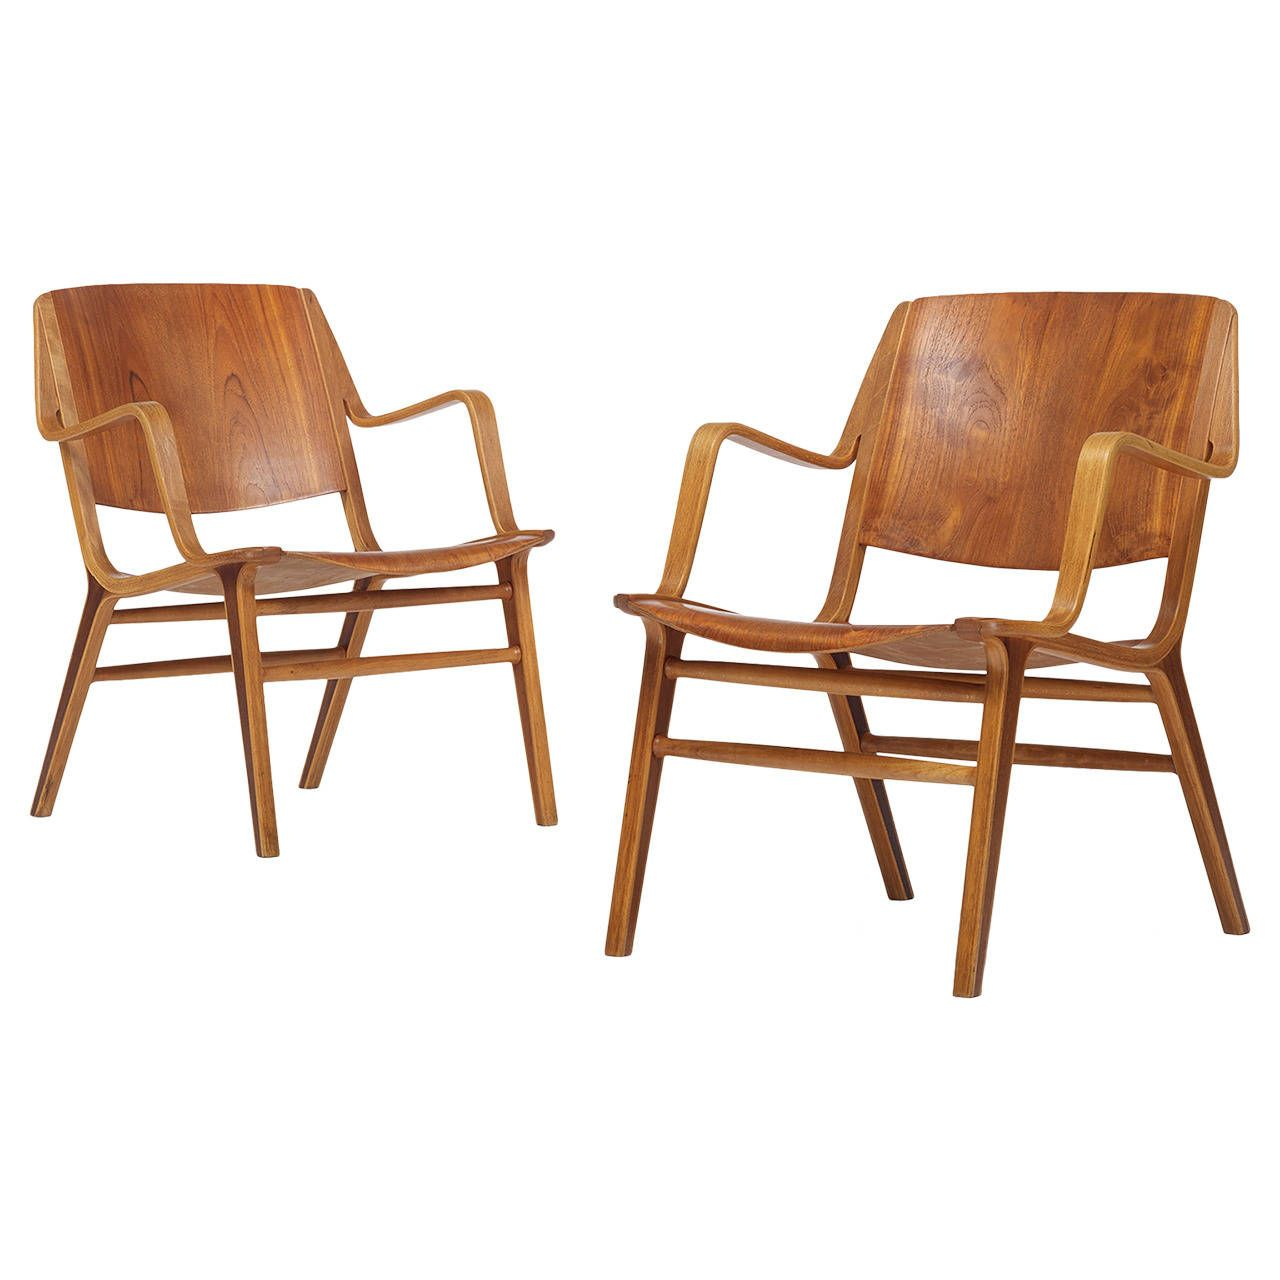 AX Chairs Model 6020, Pair by Peter Hvidt & Orla Mølgaard